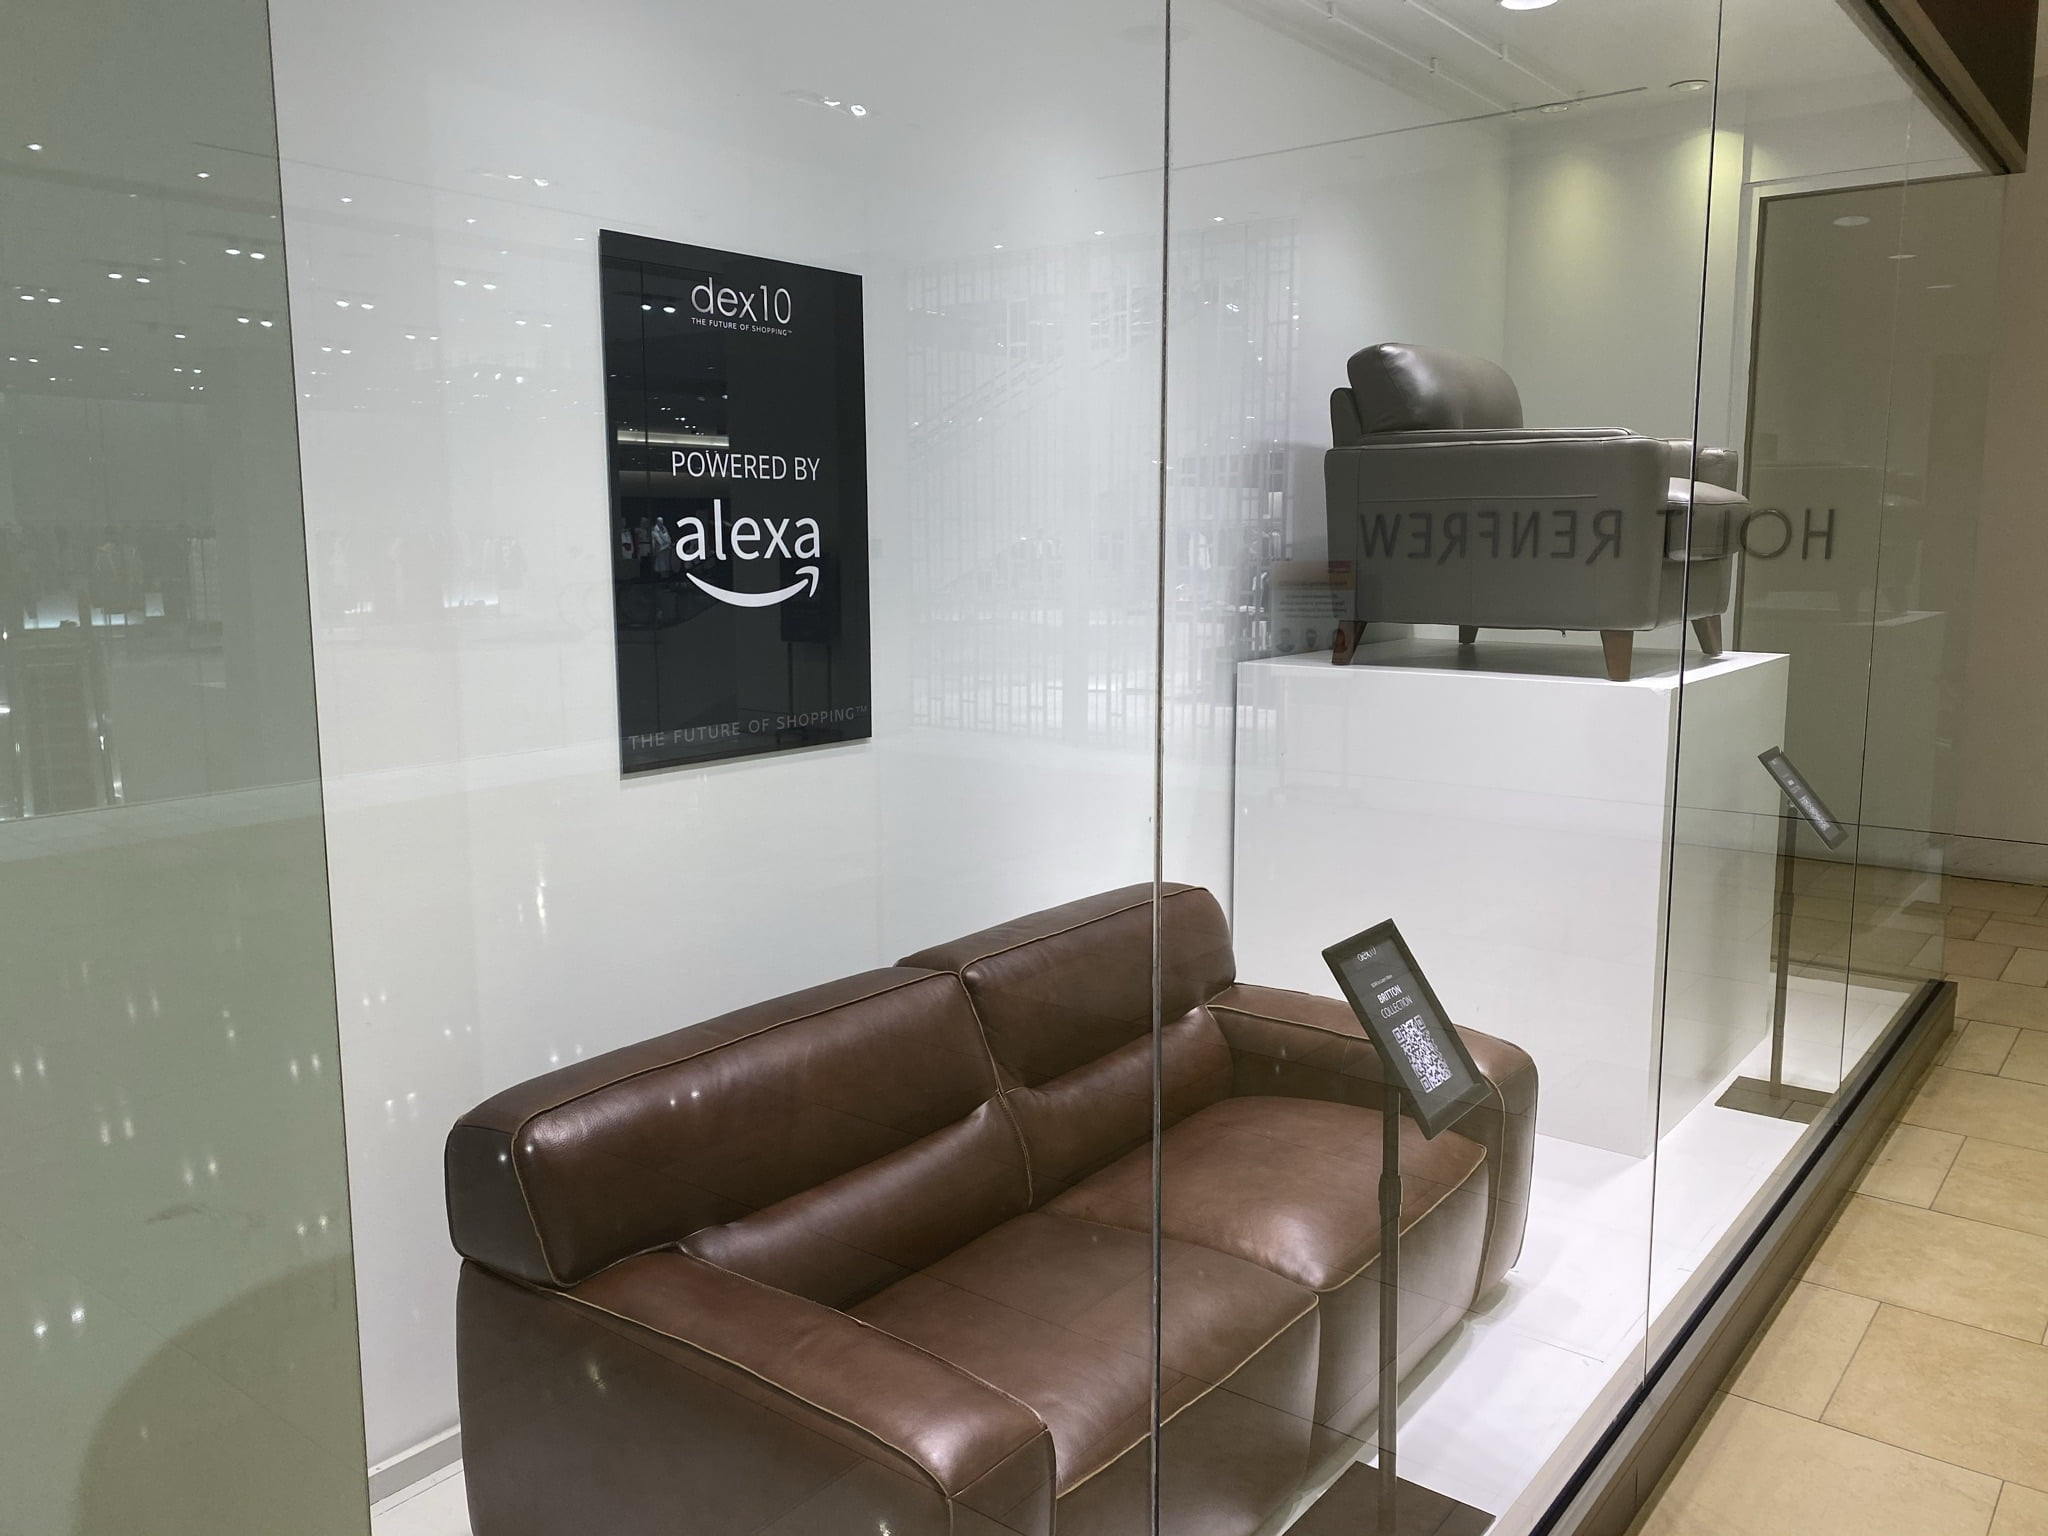 Interior of new dex10 store showcasing furniture samples and interactive QR codes. Photo: Geoff Dodsworth